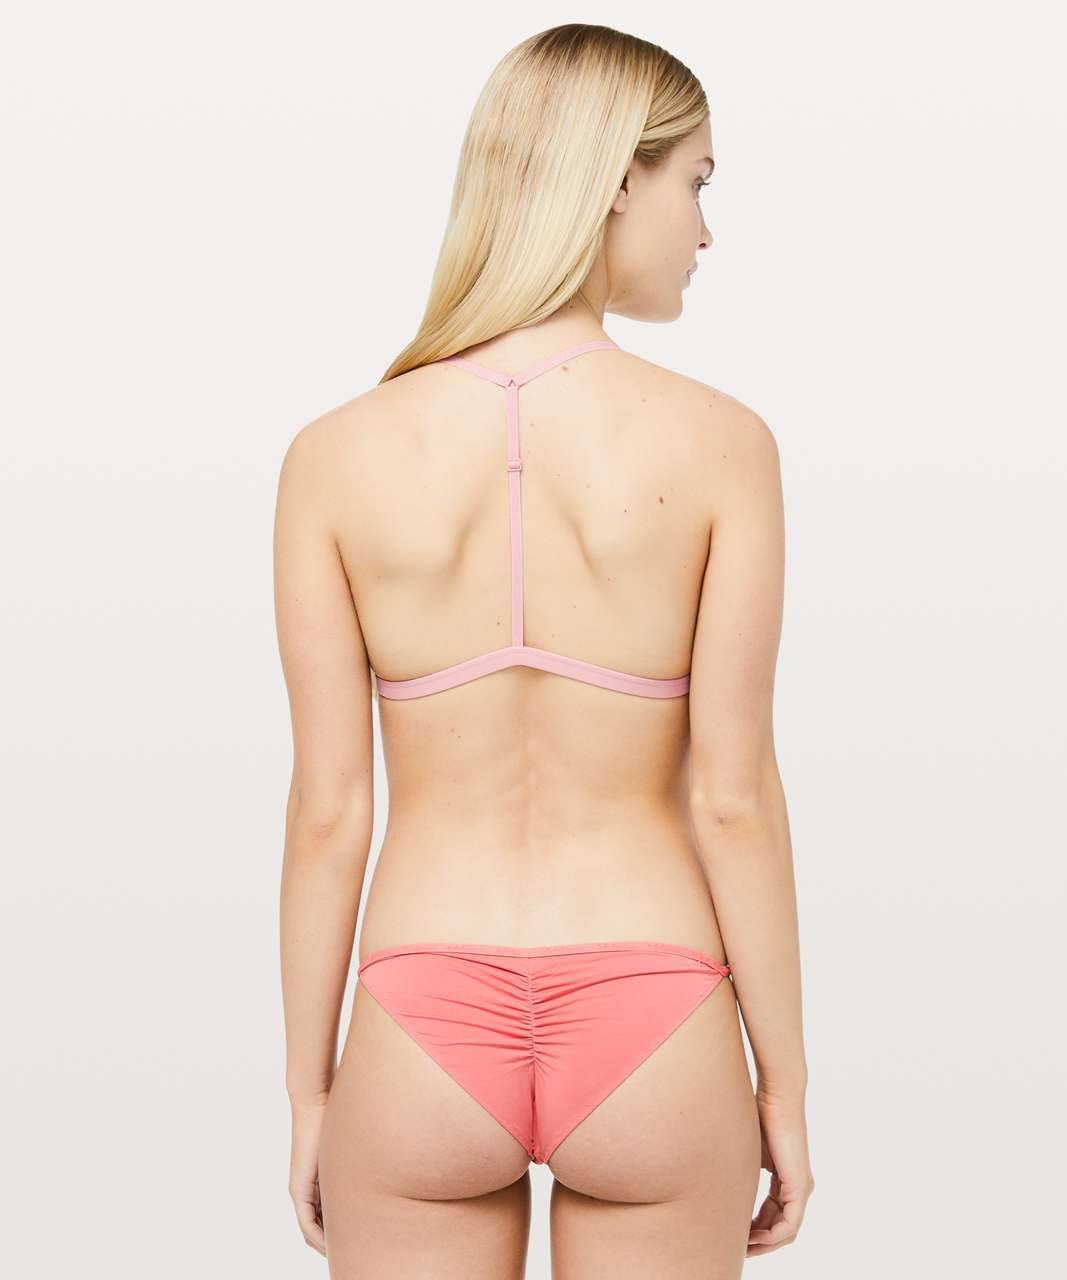 Lululemon Simply There Triangle Bralette - Faint Coral